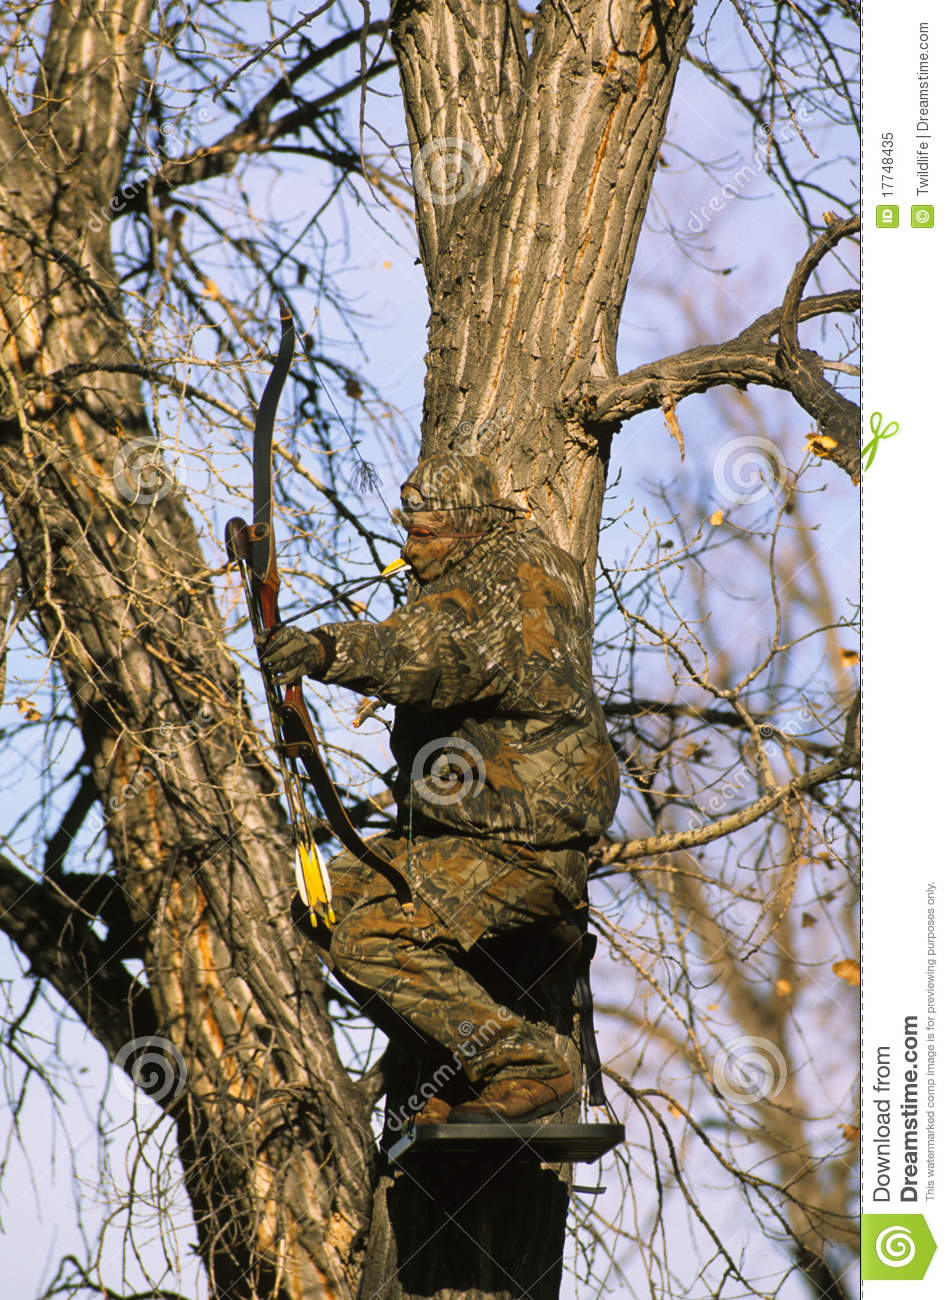 Bowhunter In Treestand Stock Image Image Of Bowhunting